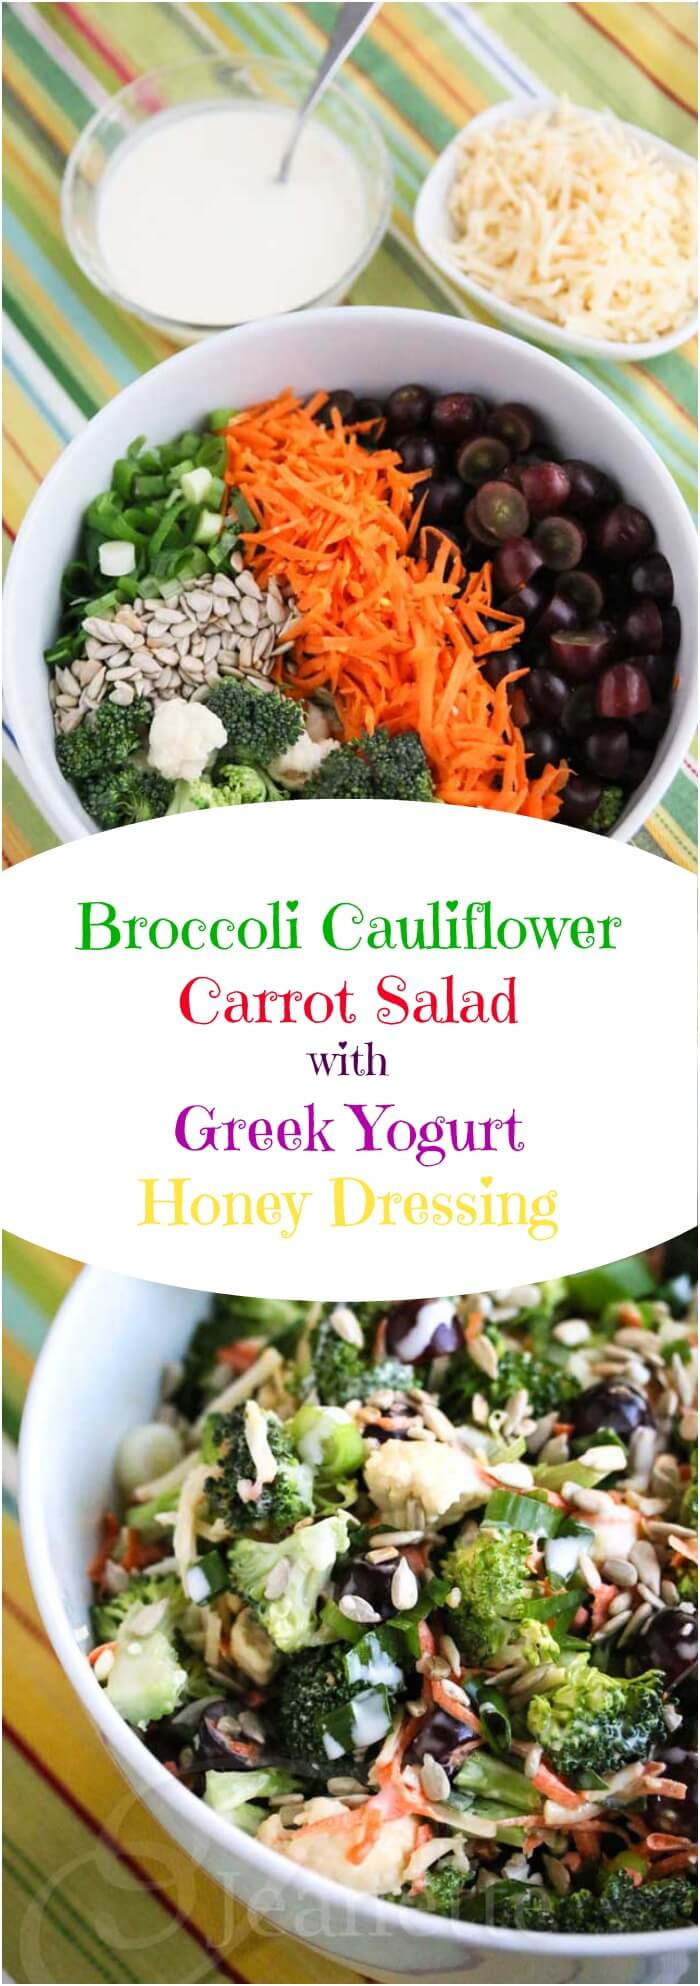 Broccoli Cauliflower Carrot Salad with Greek Yogurt Honey Dressing - you're going to love the light creamy dressing made with Greek yogurt - it's sweet and tangy